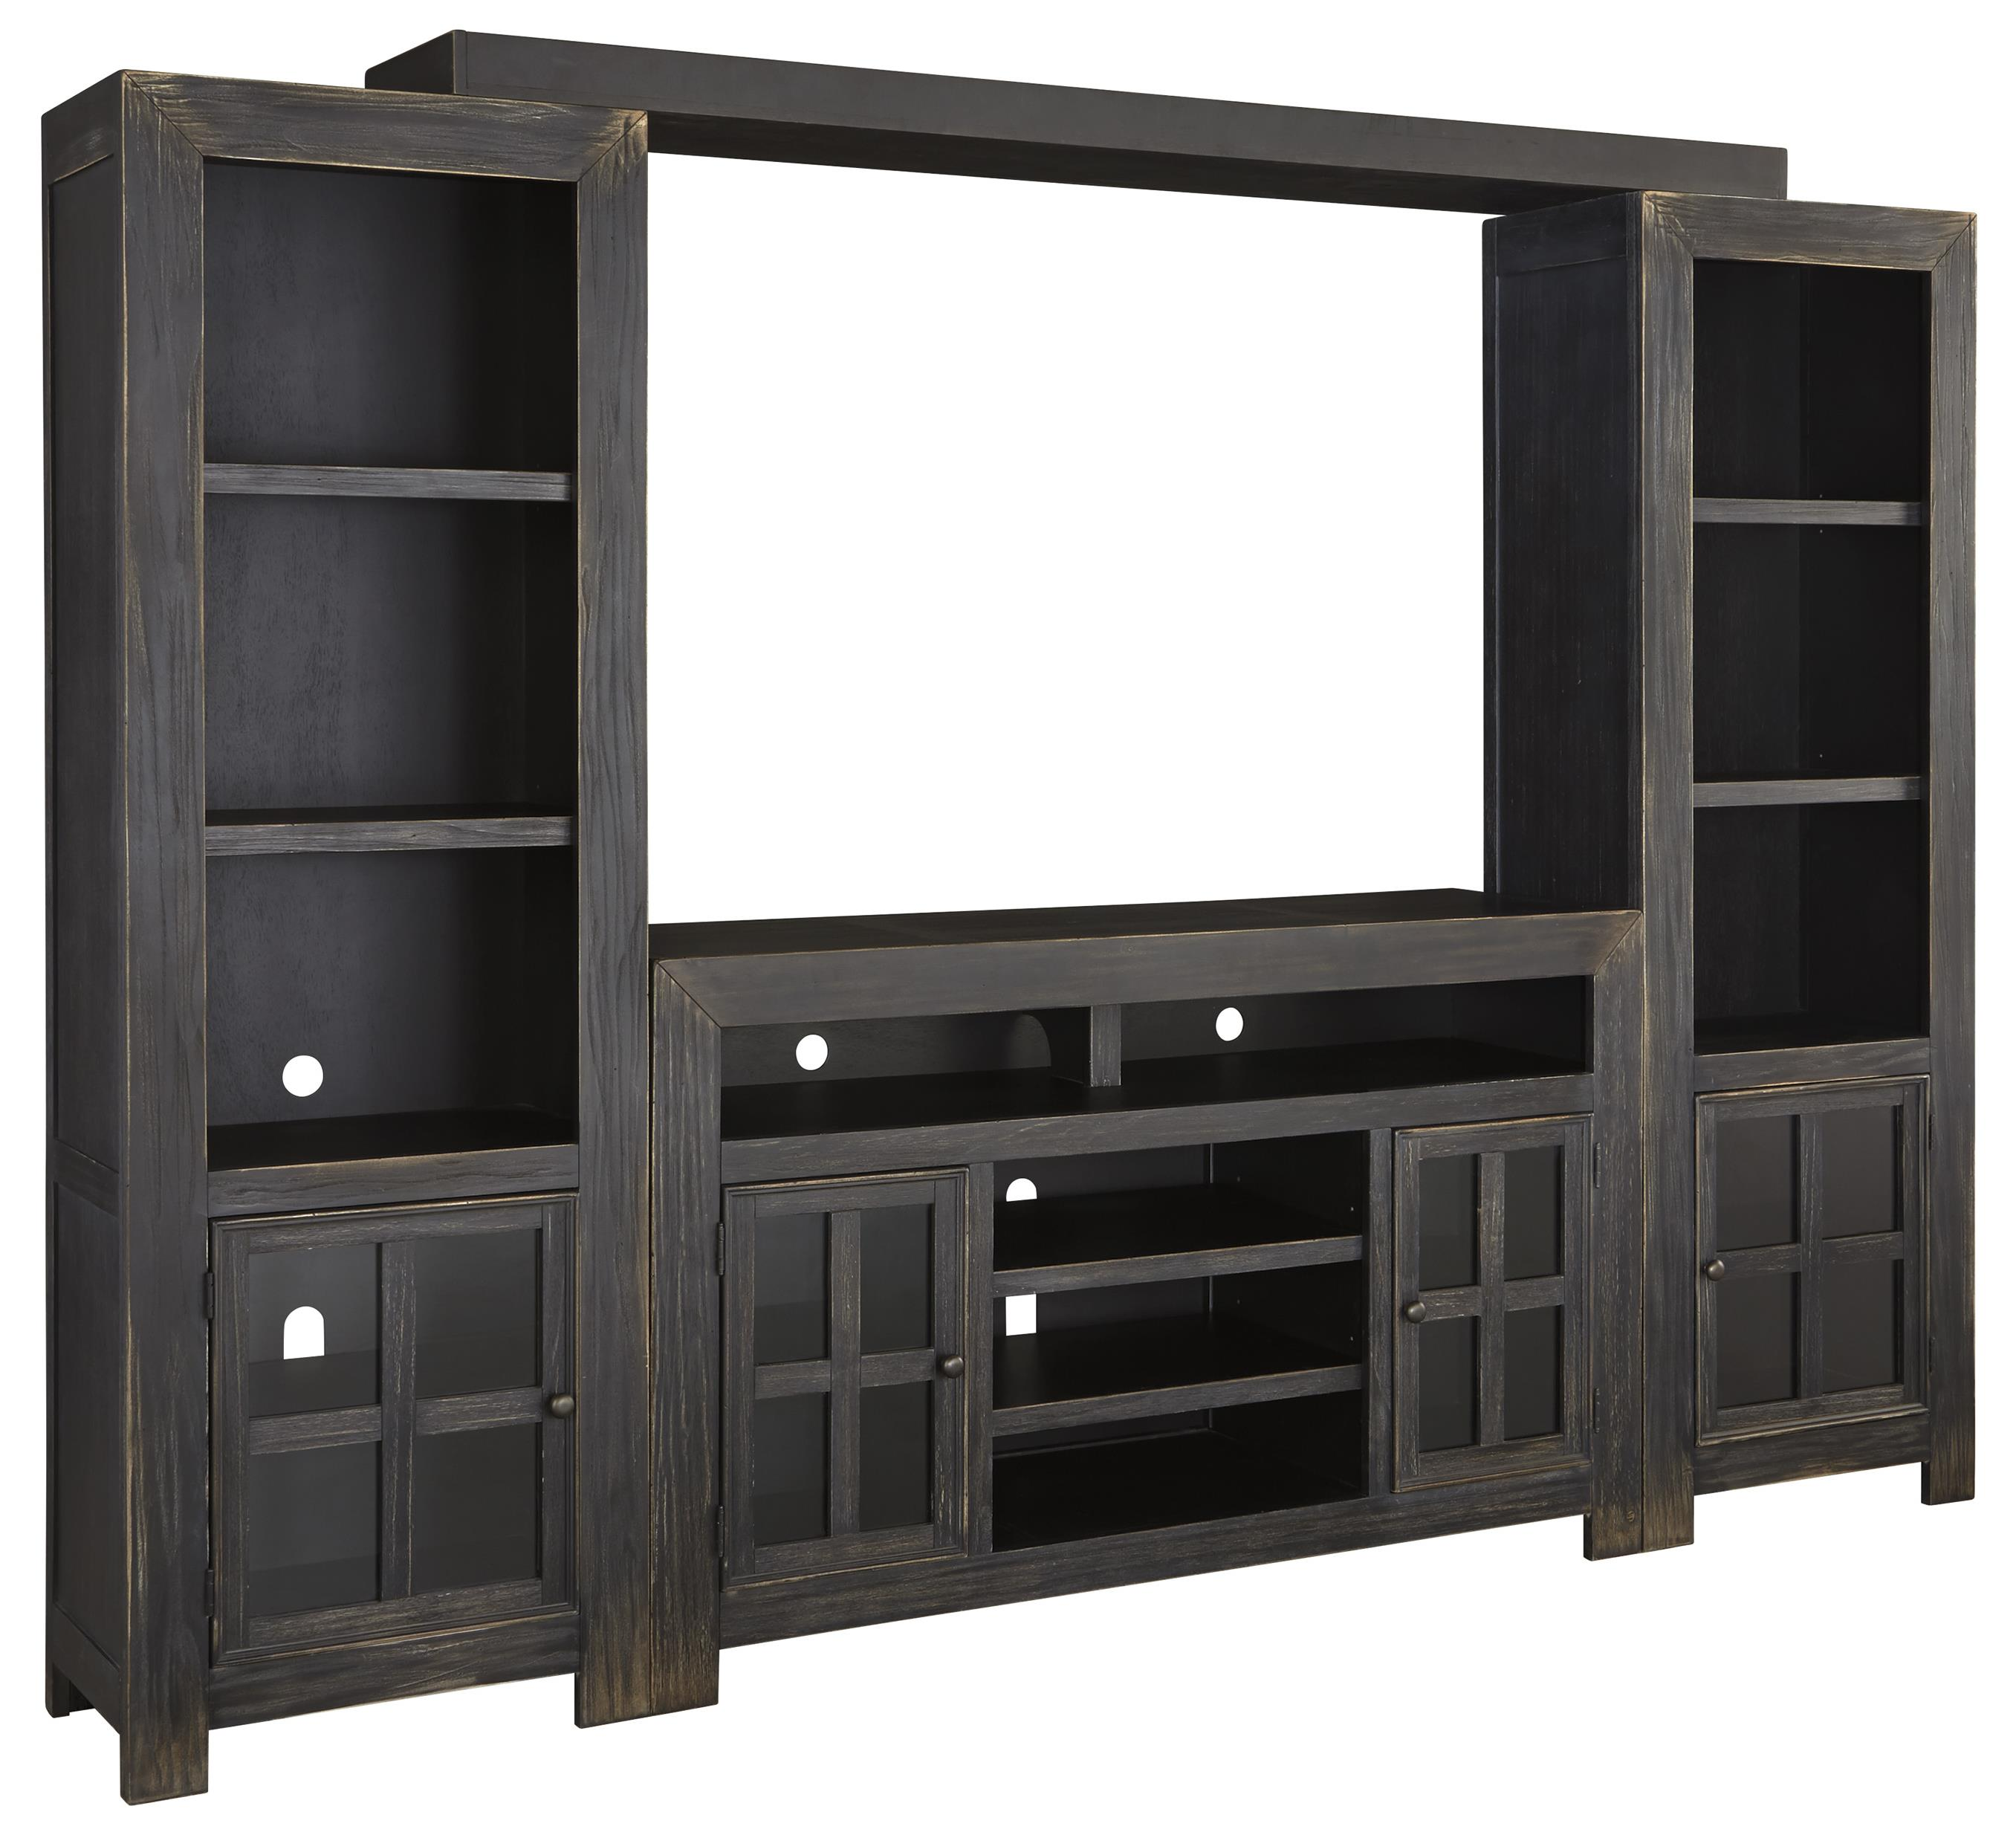 Gavelston TV Stand with Piers & Bridge by Ashley (Signature Design) at Johnny Janosik